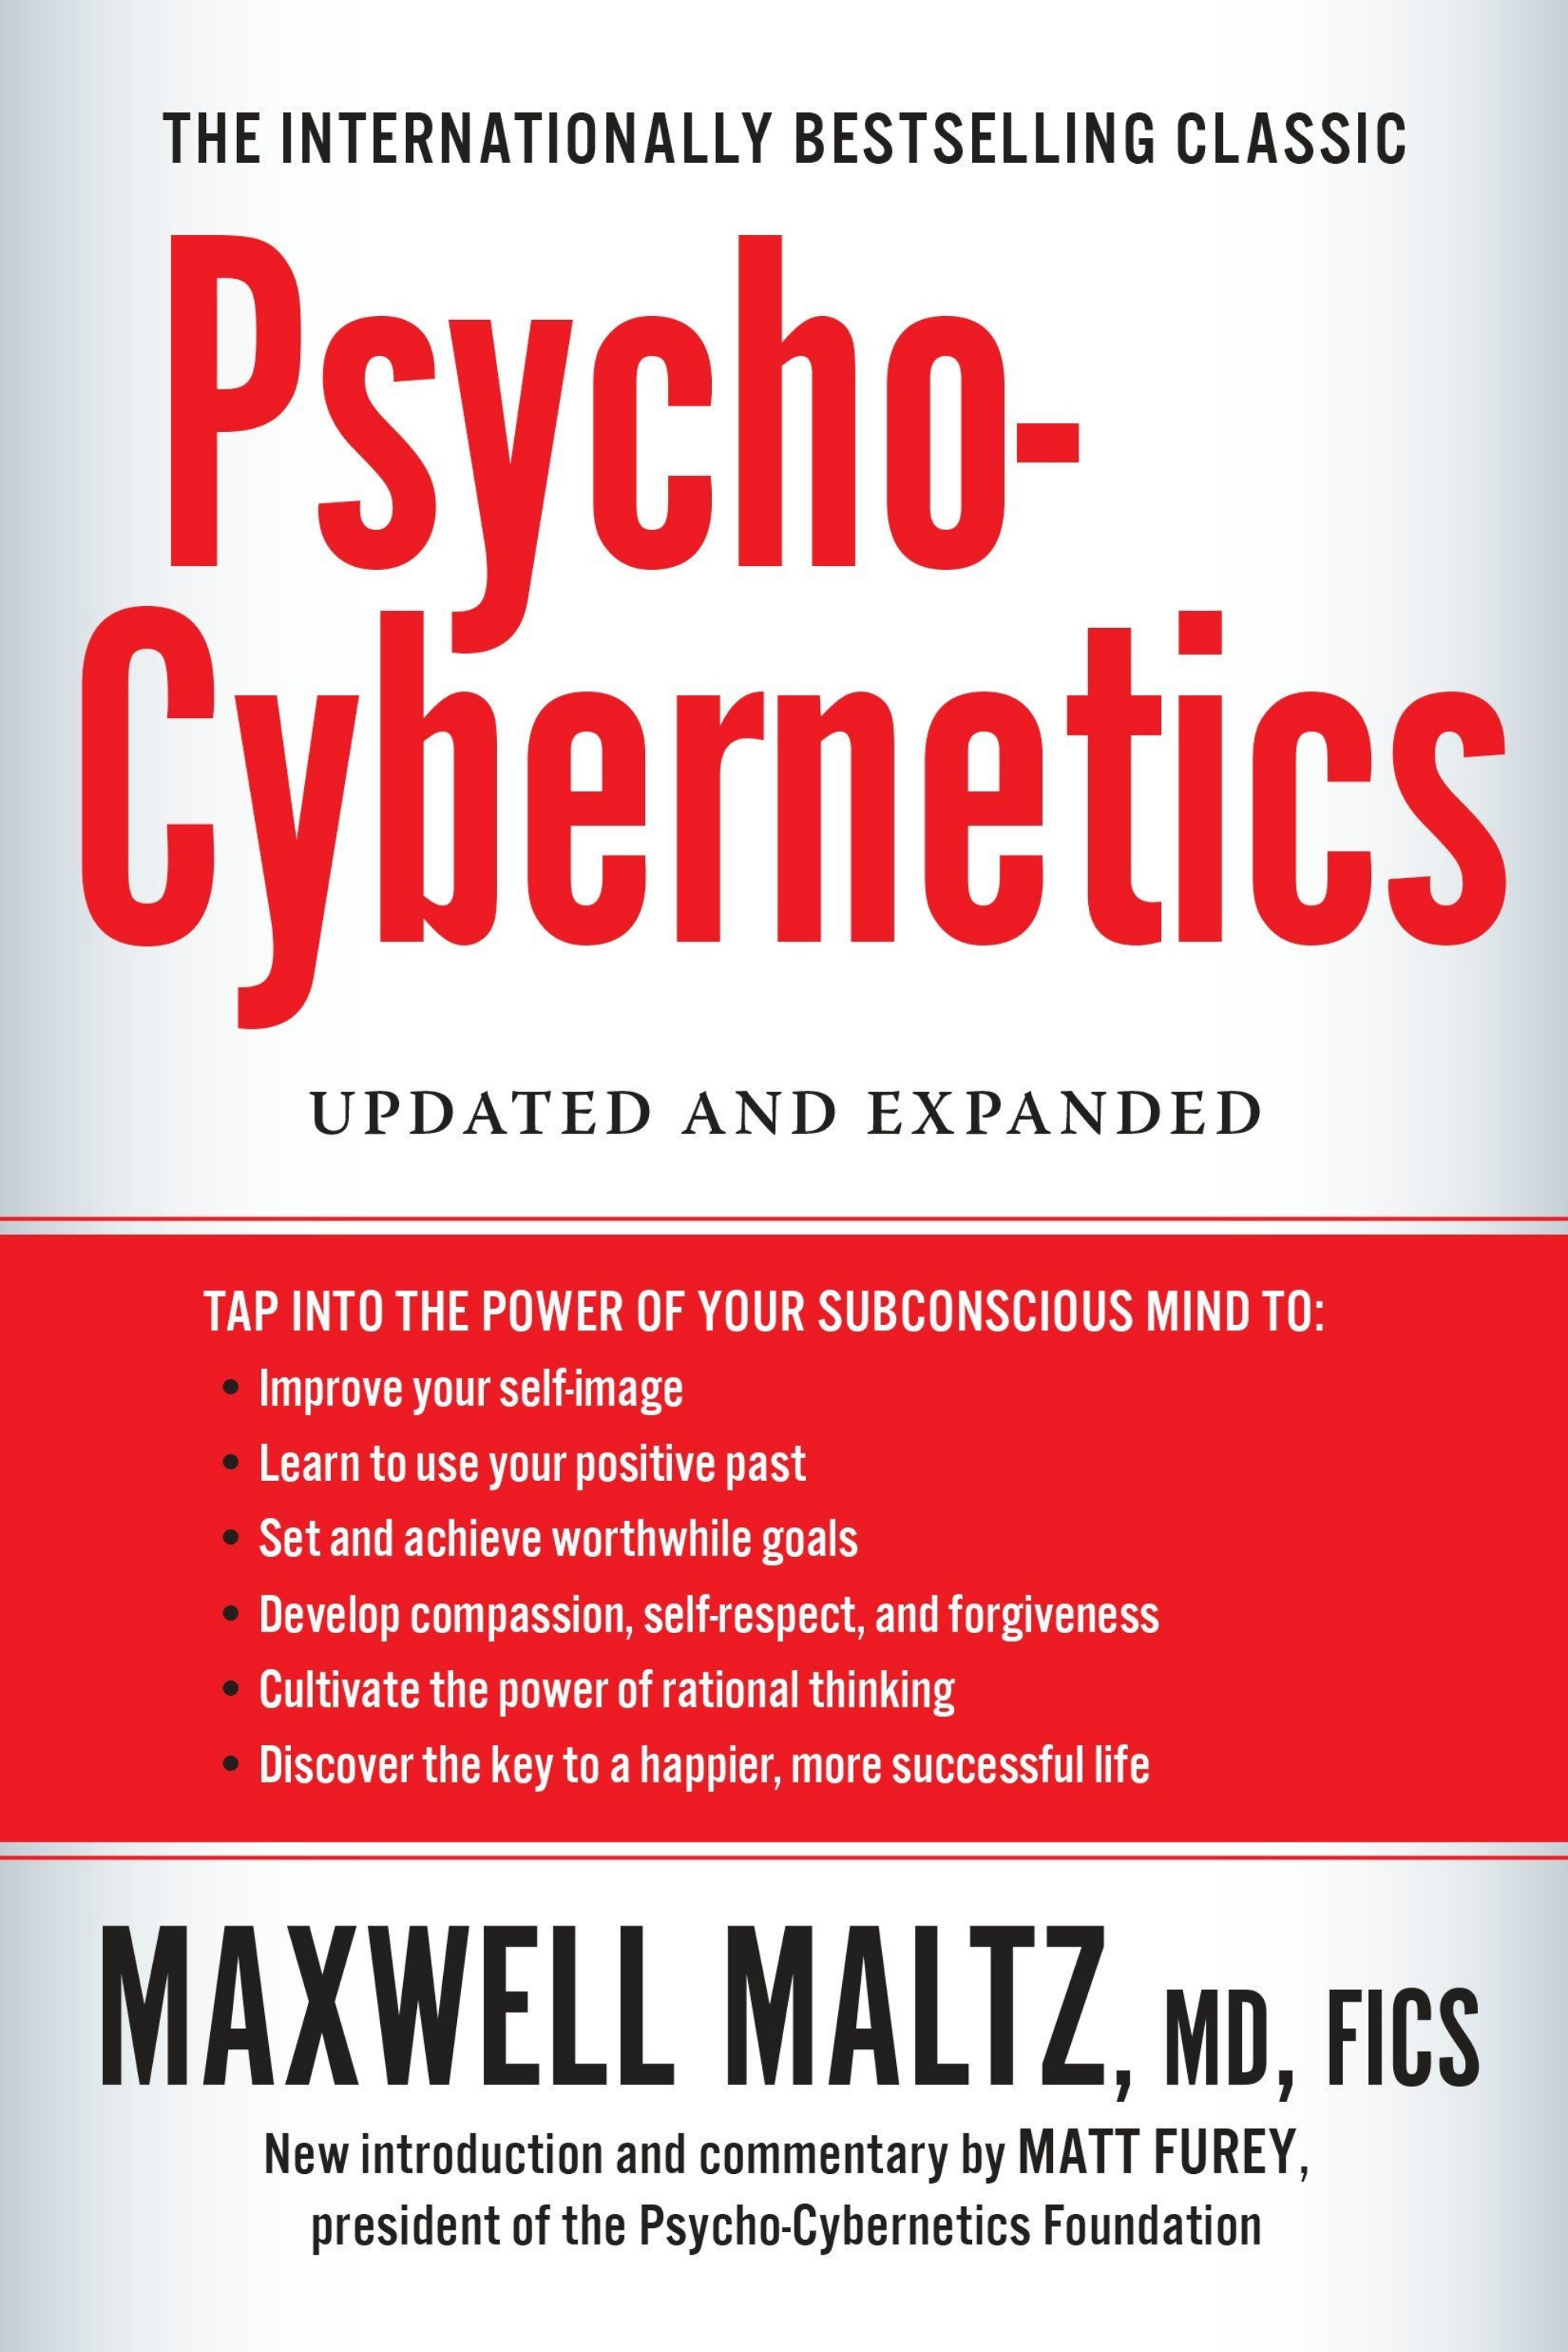 Psycho-Cybernetics Maxwell Maltz Courtney Elmer.png